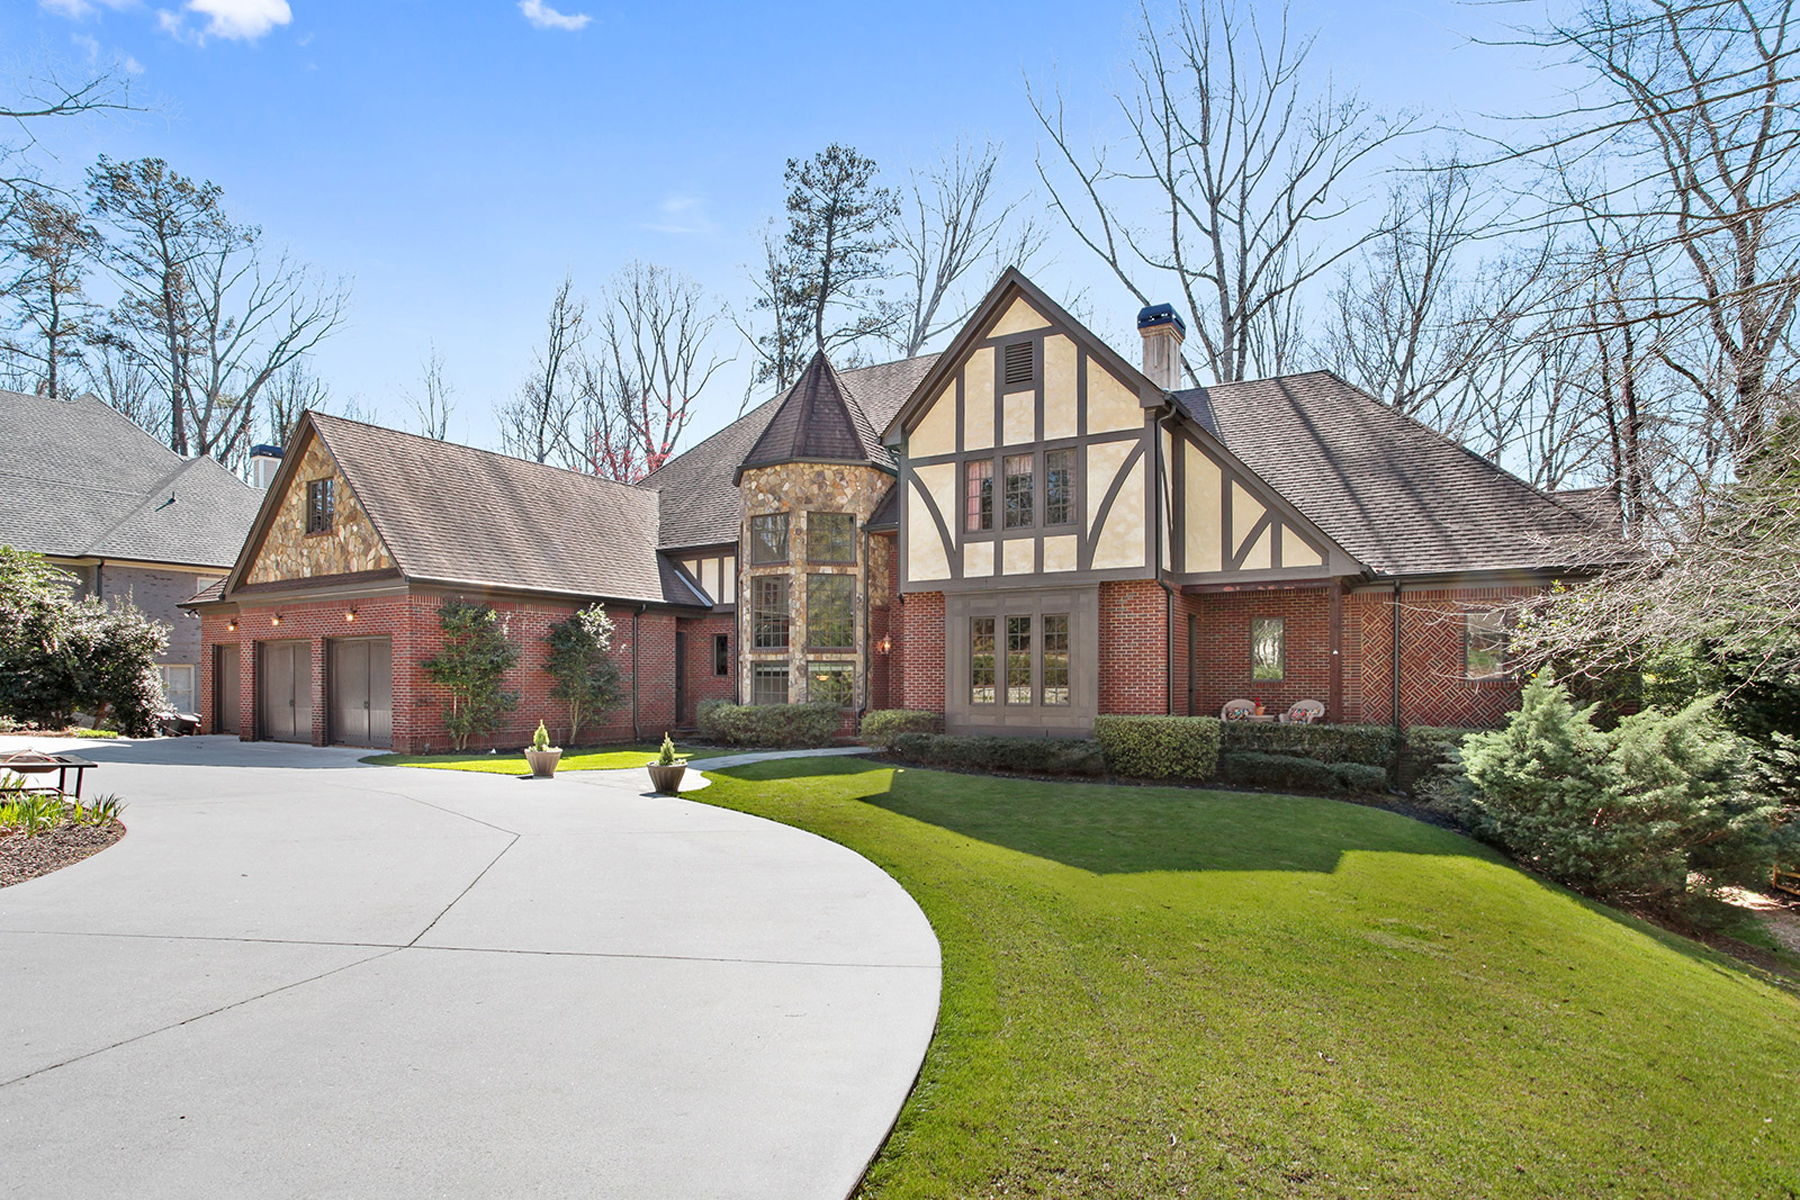 Single Family Home for Sale at Stately Brookhaven Tudor 1419 Hearst Drive Brookhaven, Georgia 30319 United States